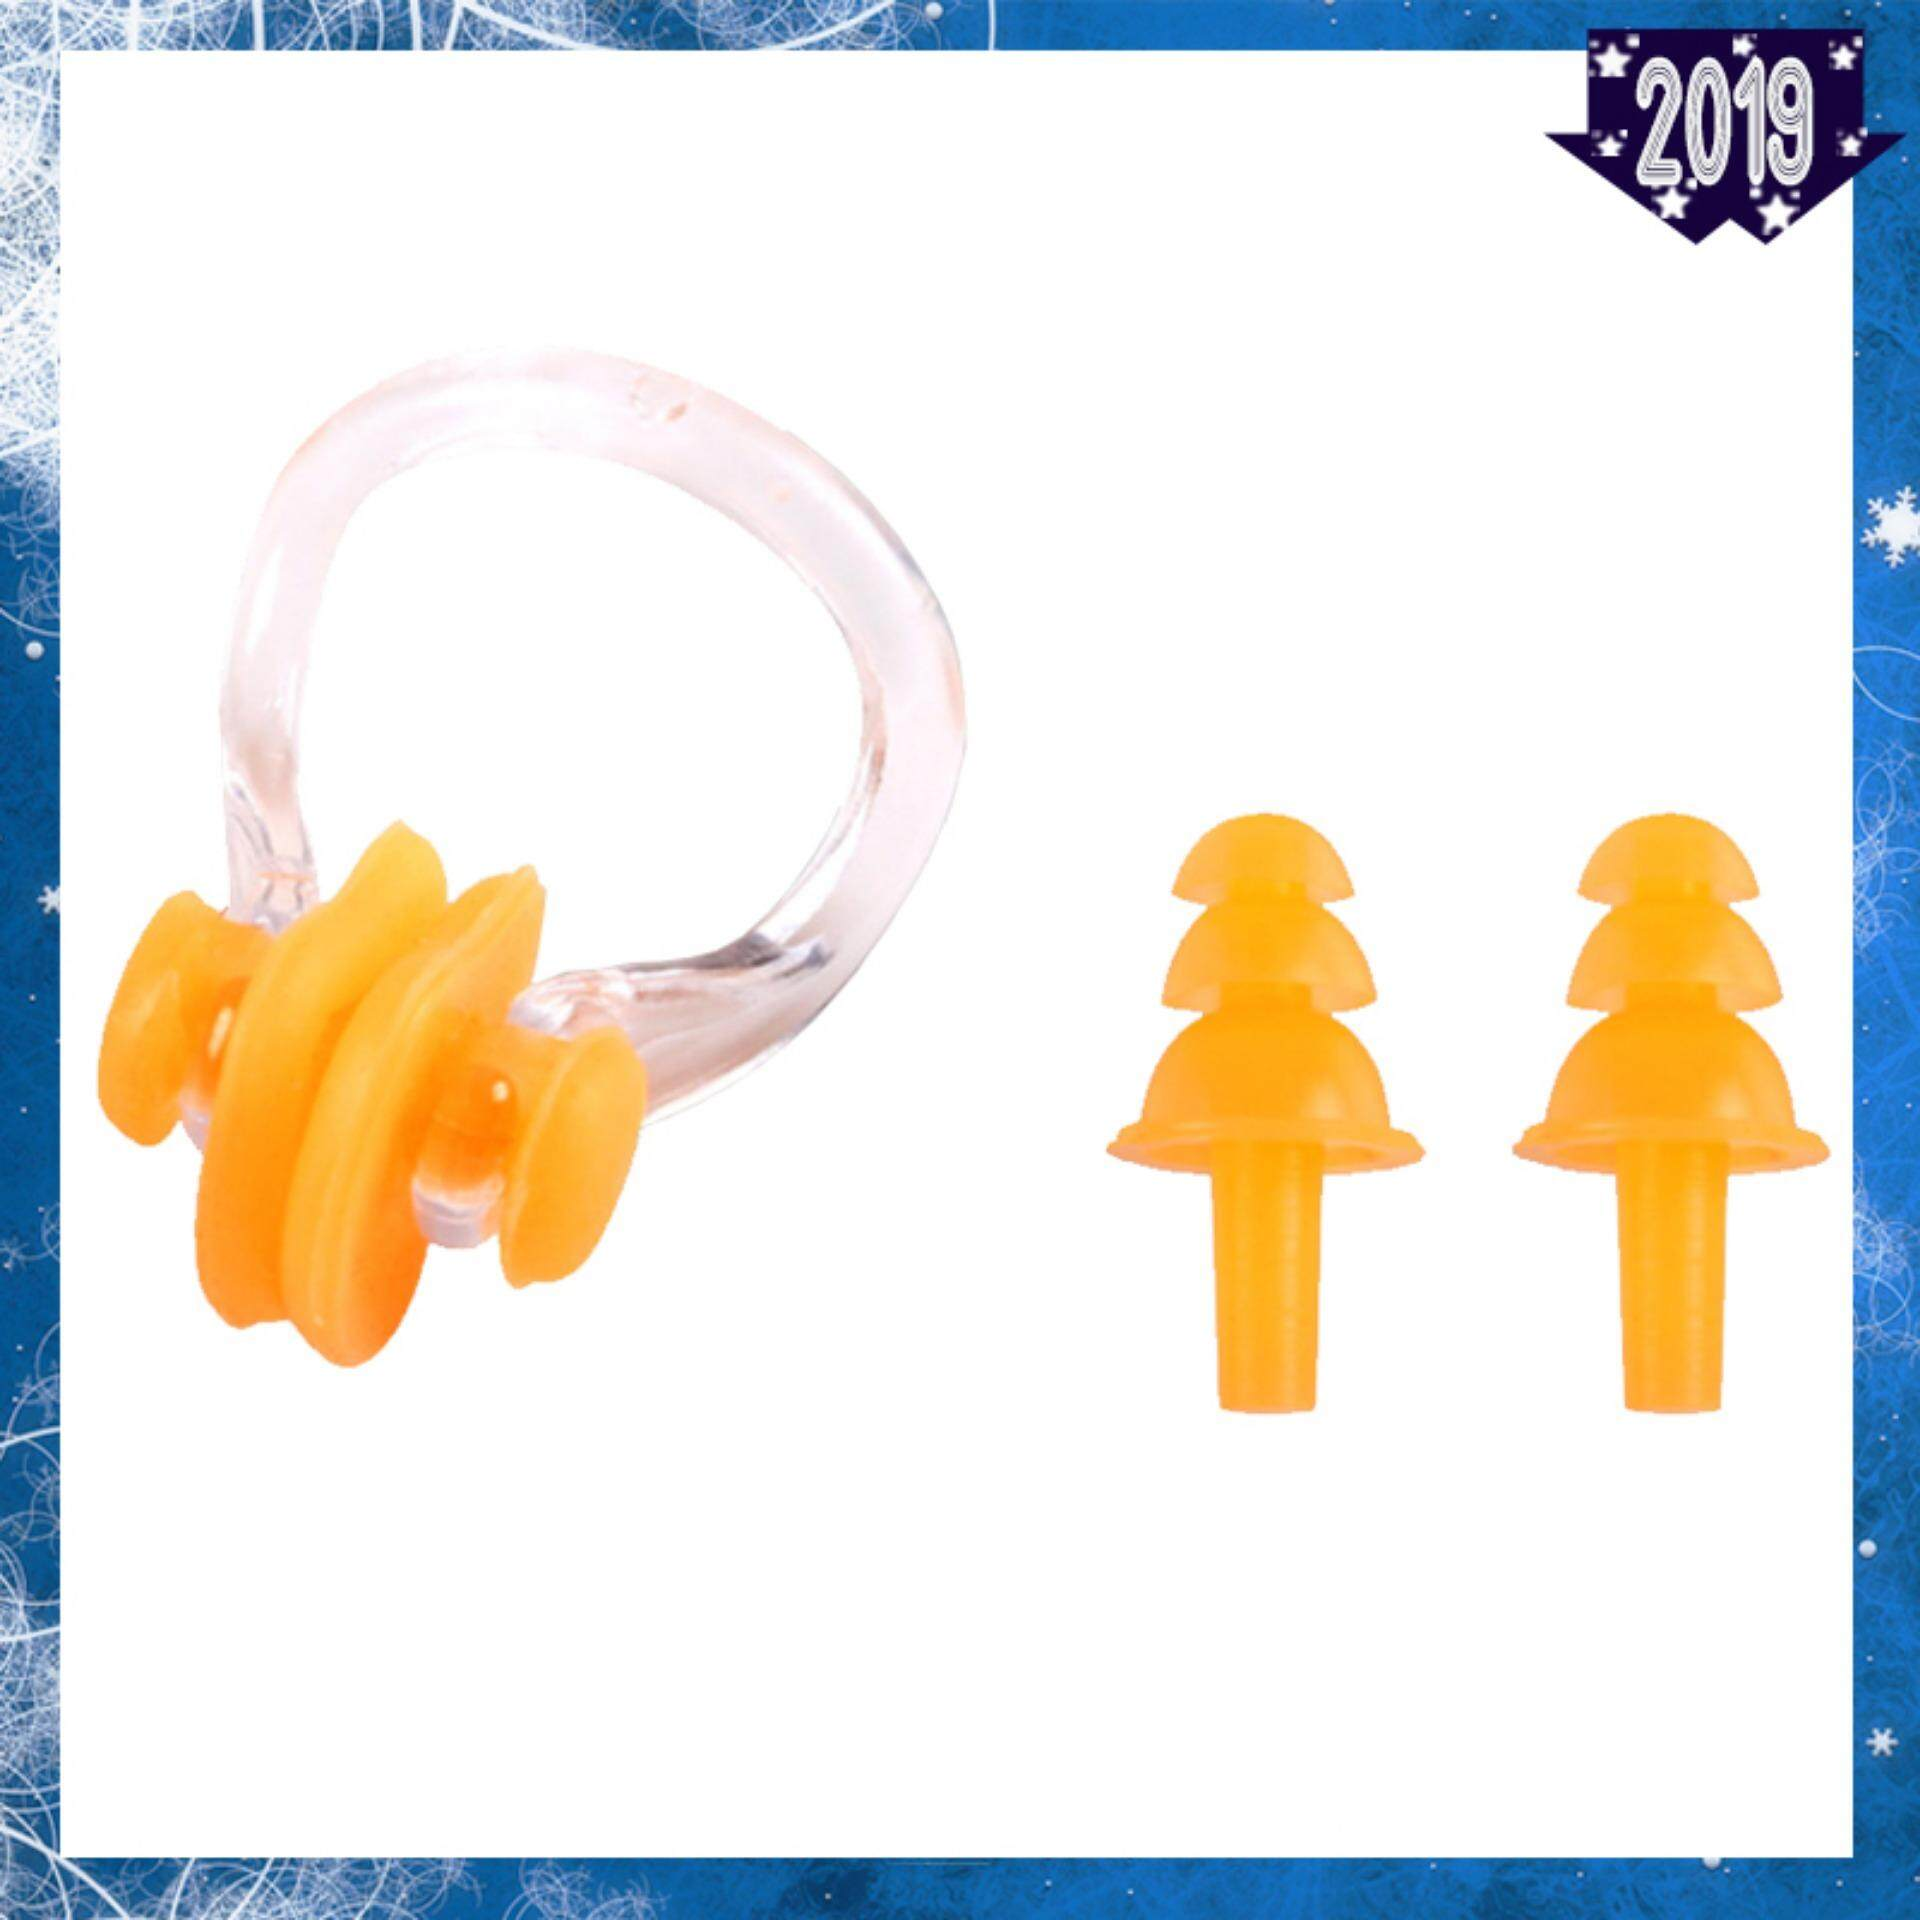 Youyou Silicone Earplugs And Nose Clip Swimming Set Protector For Adults - Orange By Every1.